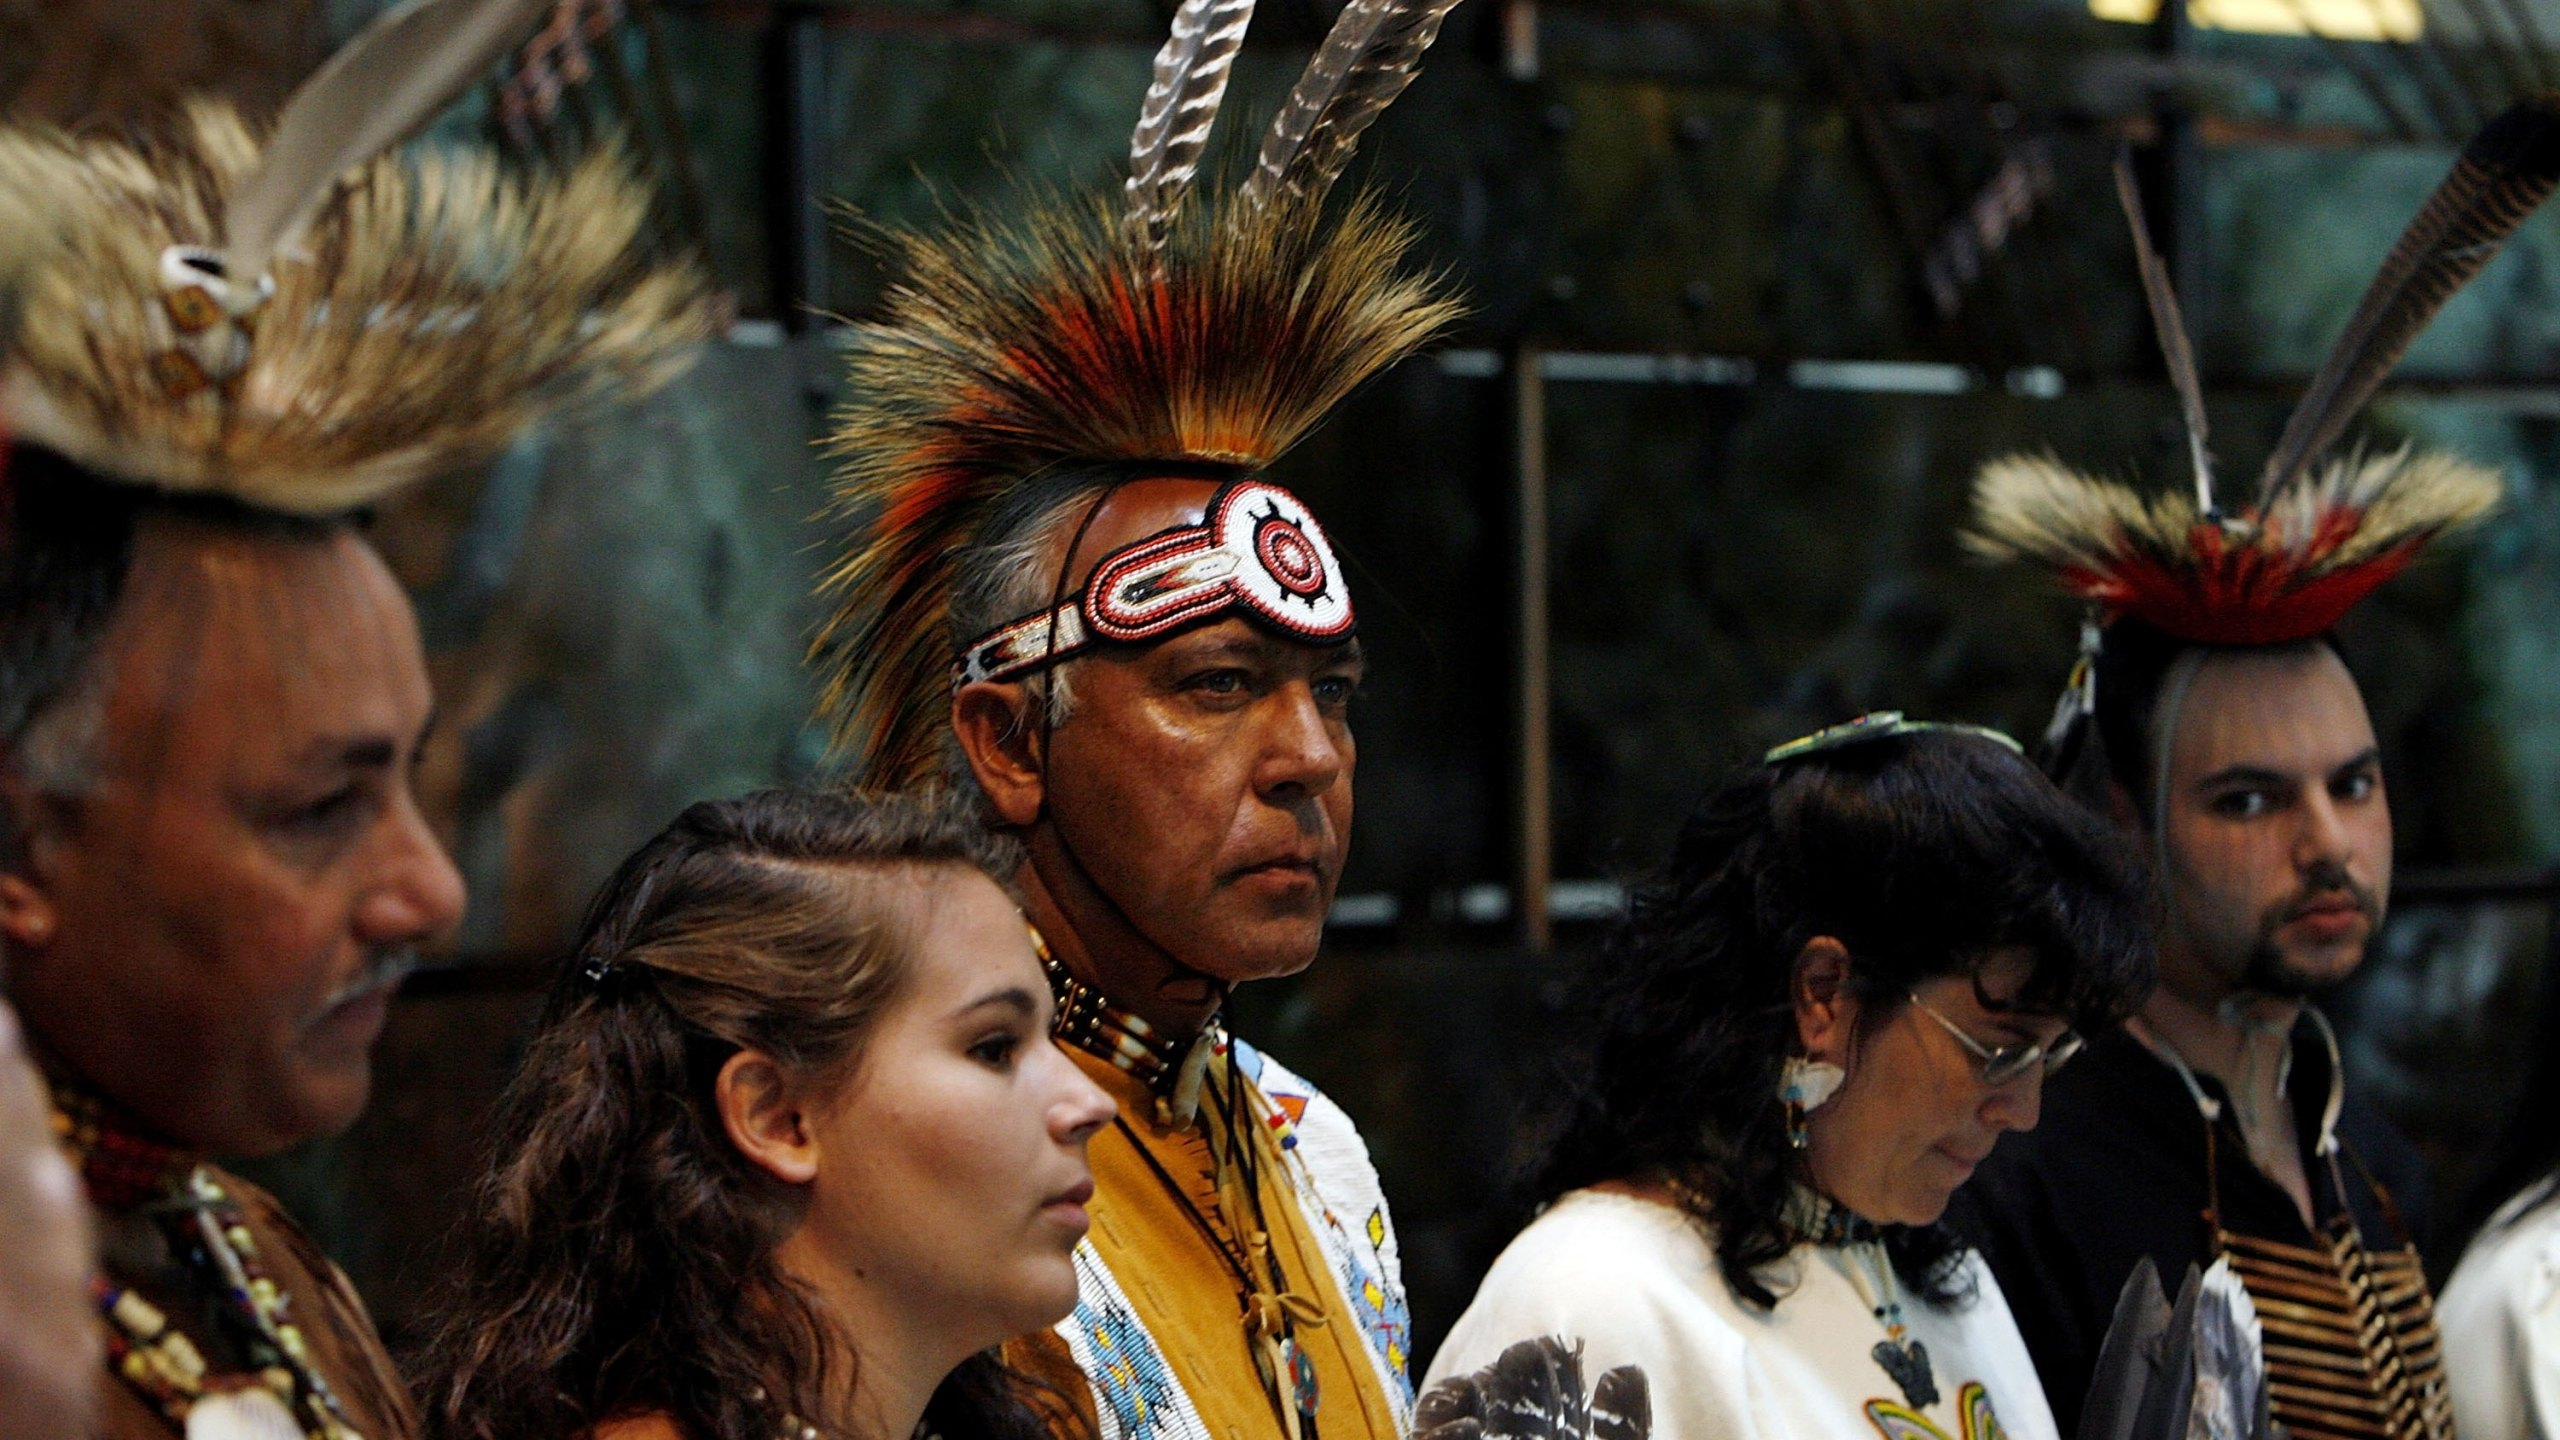 Virginia Indian Chiefs To Visit Pocahantas' Grave_718985